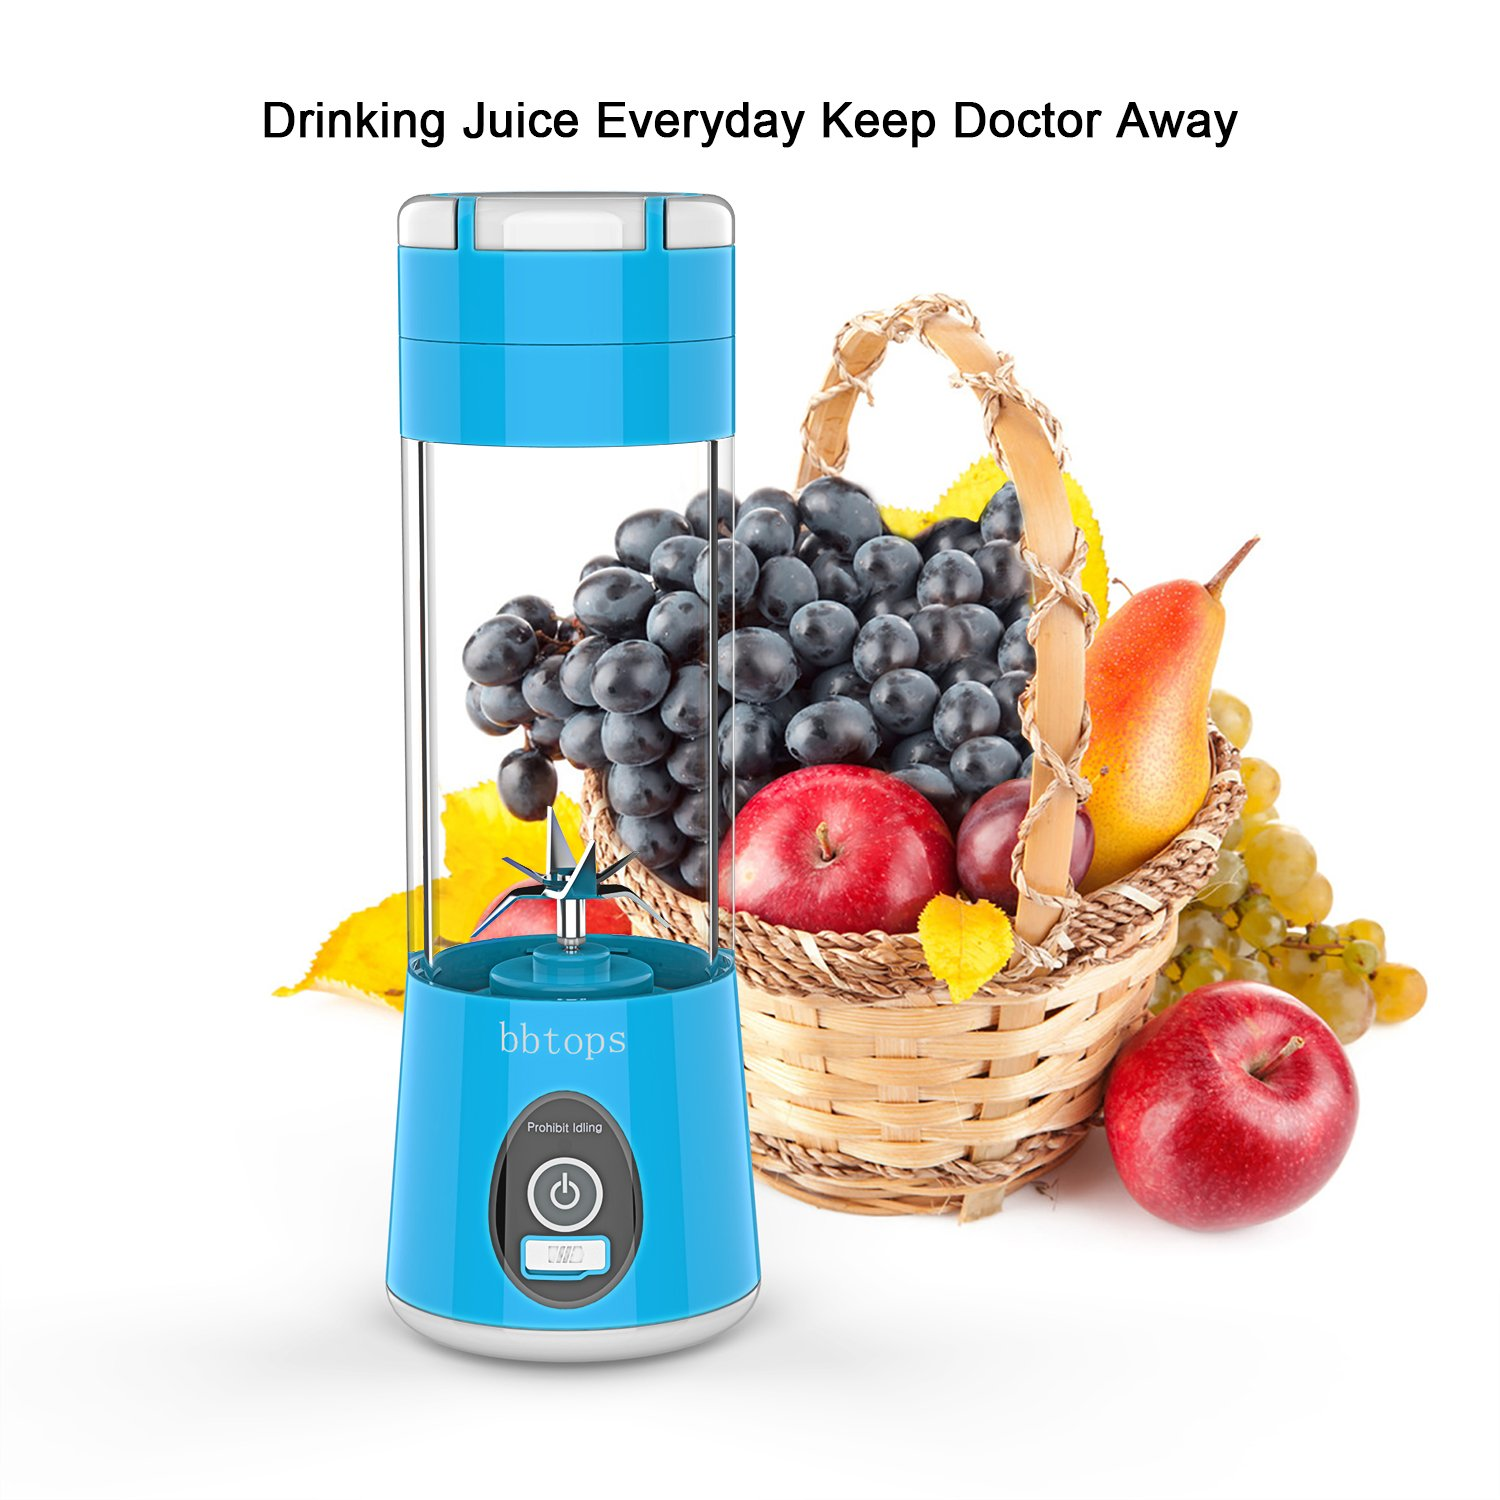 Portable Blender Mini Travel Juice Cup,Bbtops Fruit Mixer Personal Size Battery Operated Juicer Cup USB Charging Sport Juice Maker, Shakes and Smoothies Blender 380ml, Blue